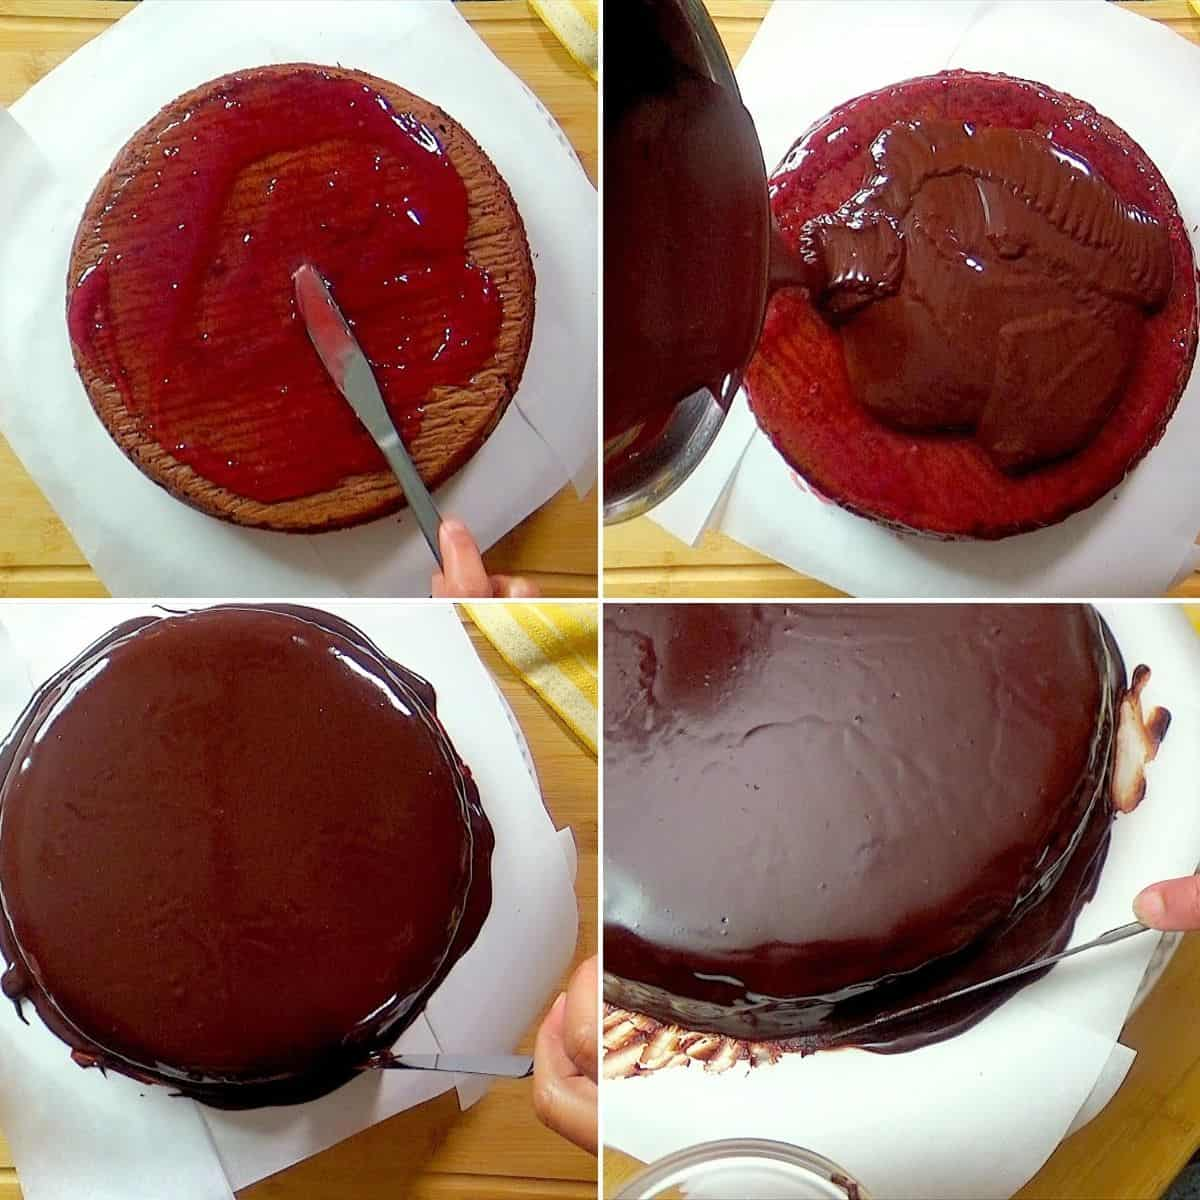 Spreading jam syrup and ganache icing.